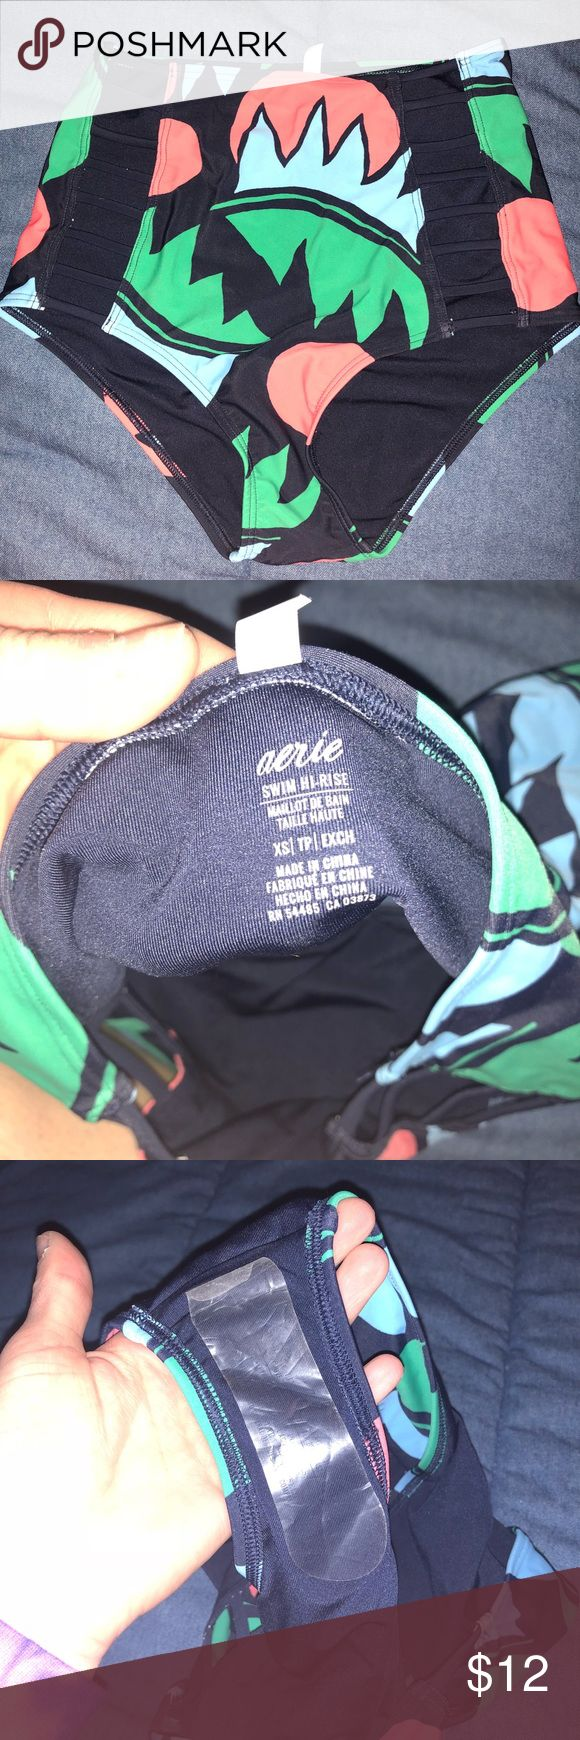 High waited bathing suit bottoms American eagle high waisted bathing suit bottoms. Still has liner. Never worn but tag got lost. Cut outs along the side. Colors: navy, coral, green, and light blue American Eagle Outfitters Swim Bikinis